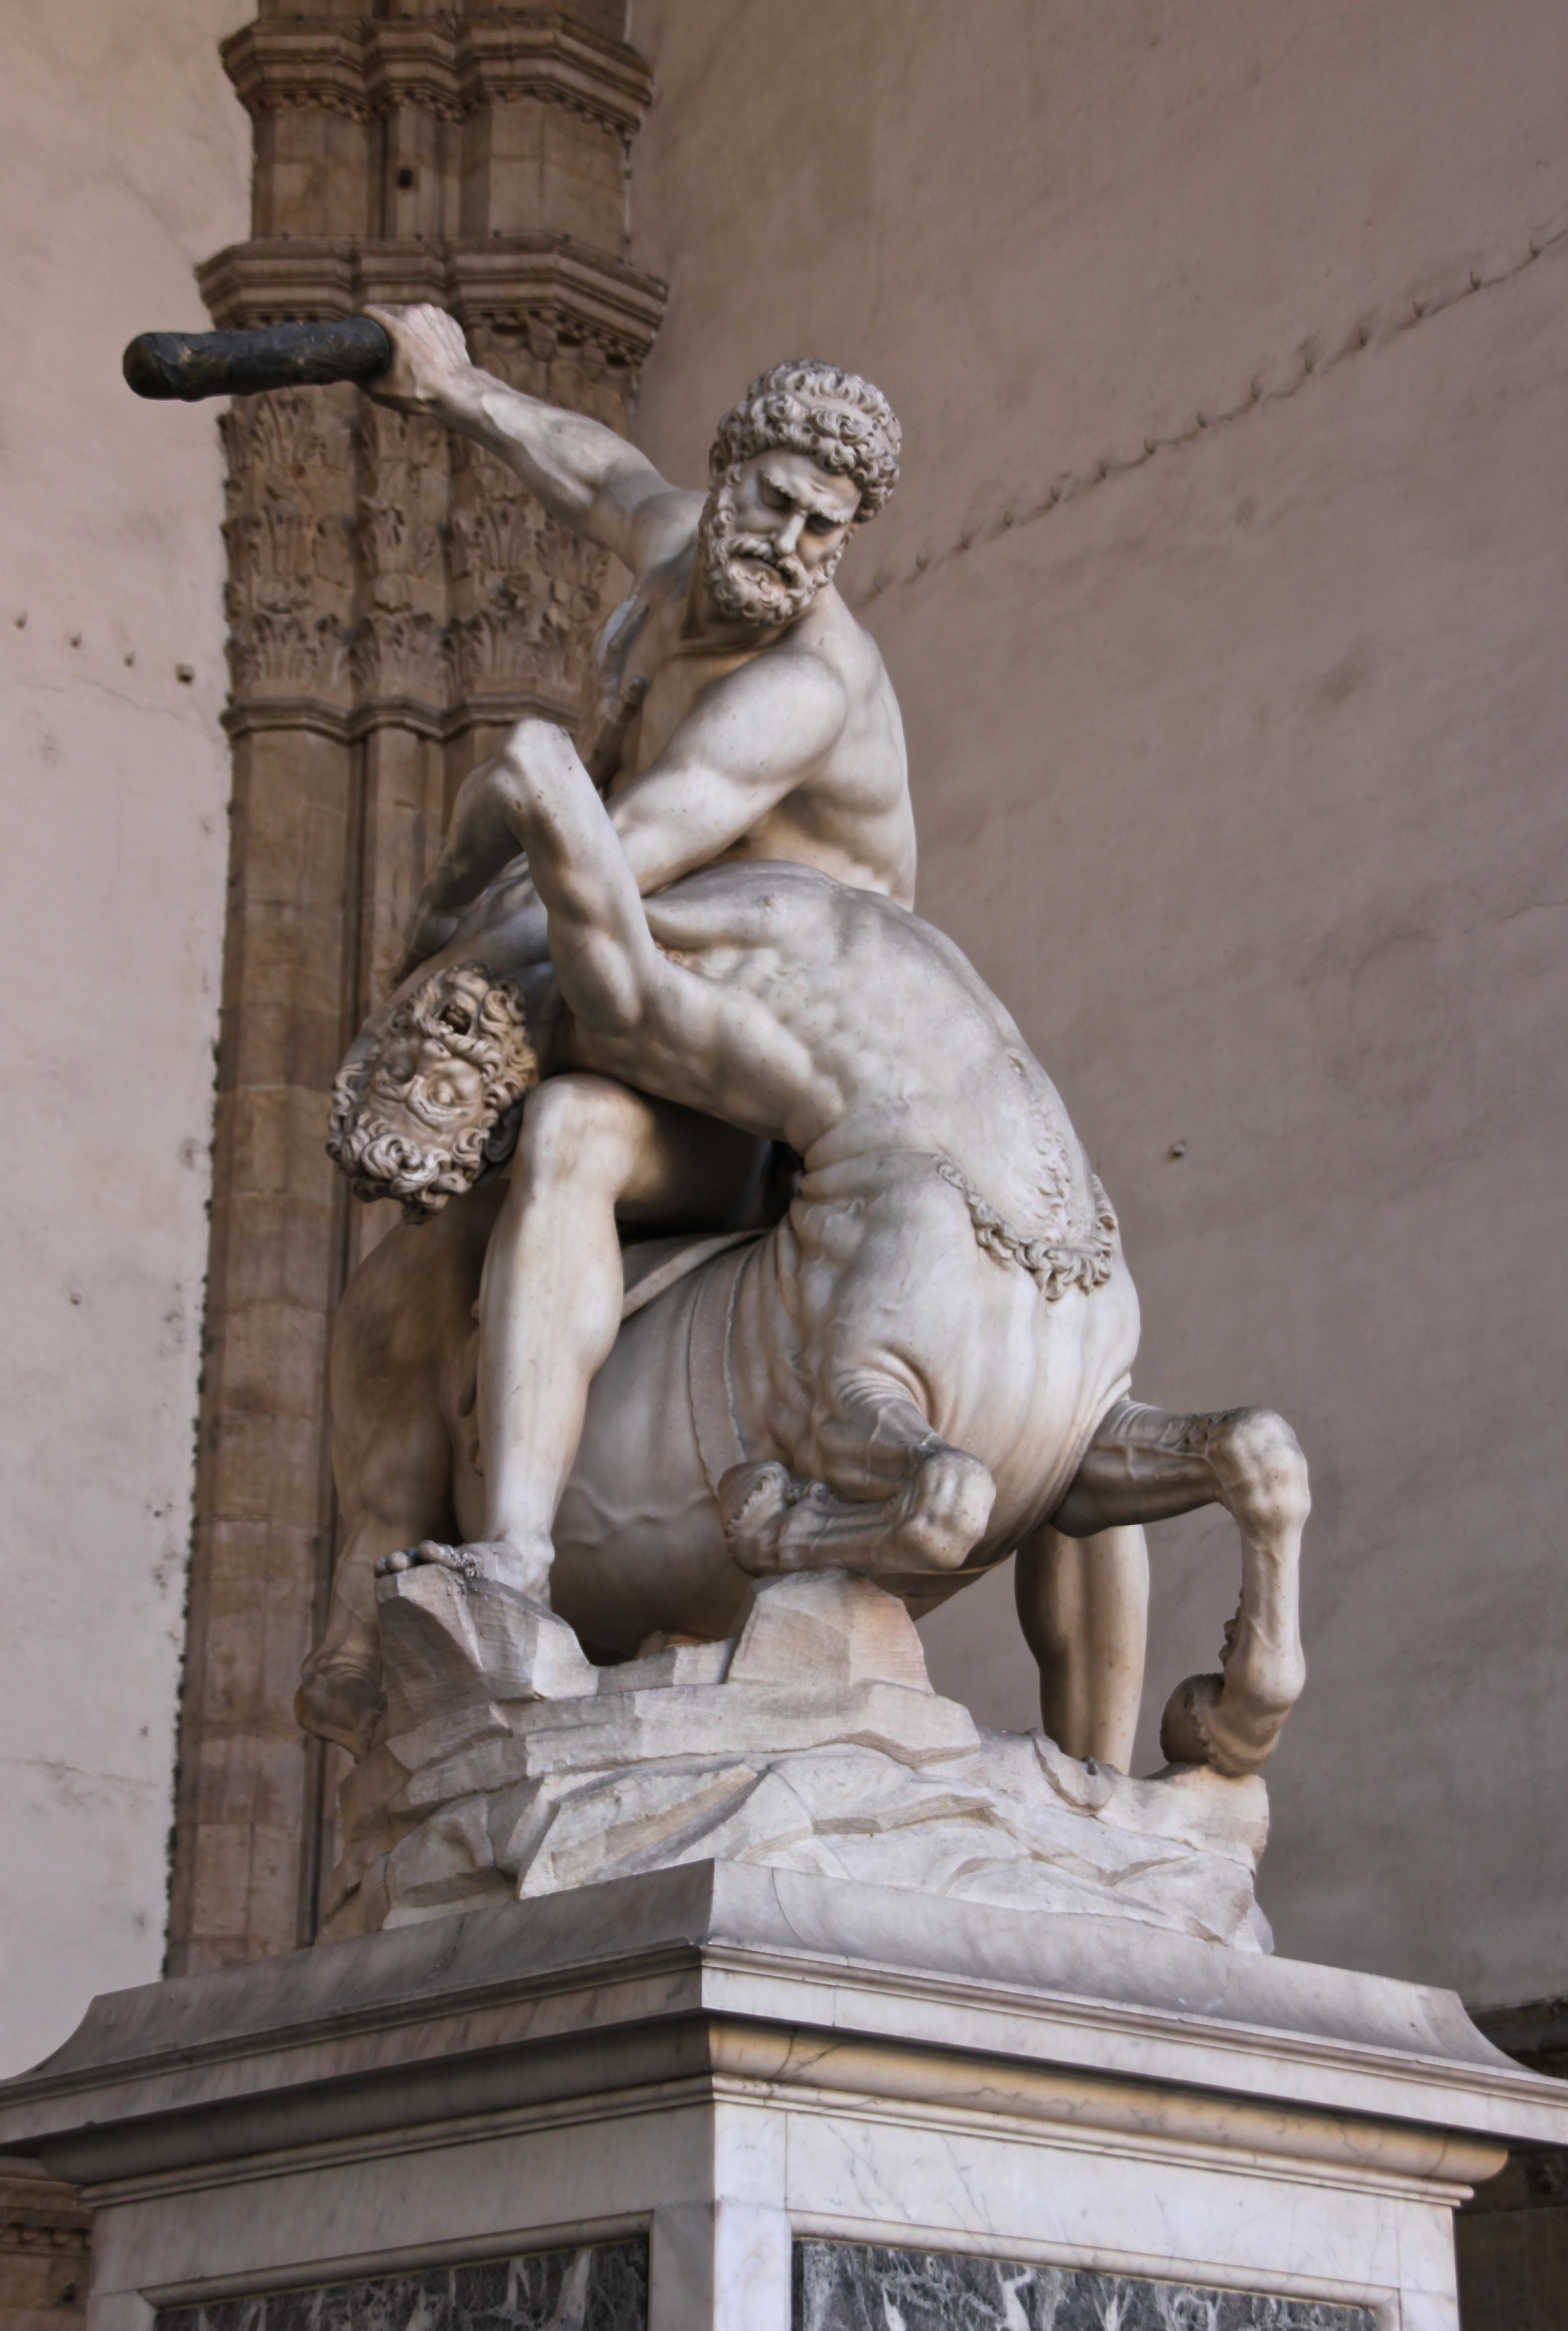 Another of Giambologna's statues in the Loggia